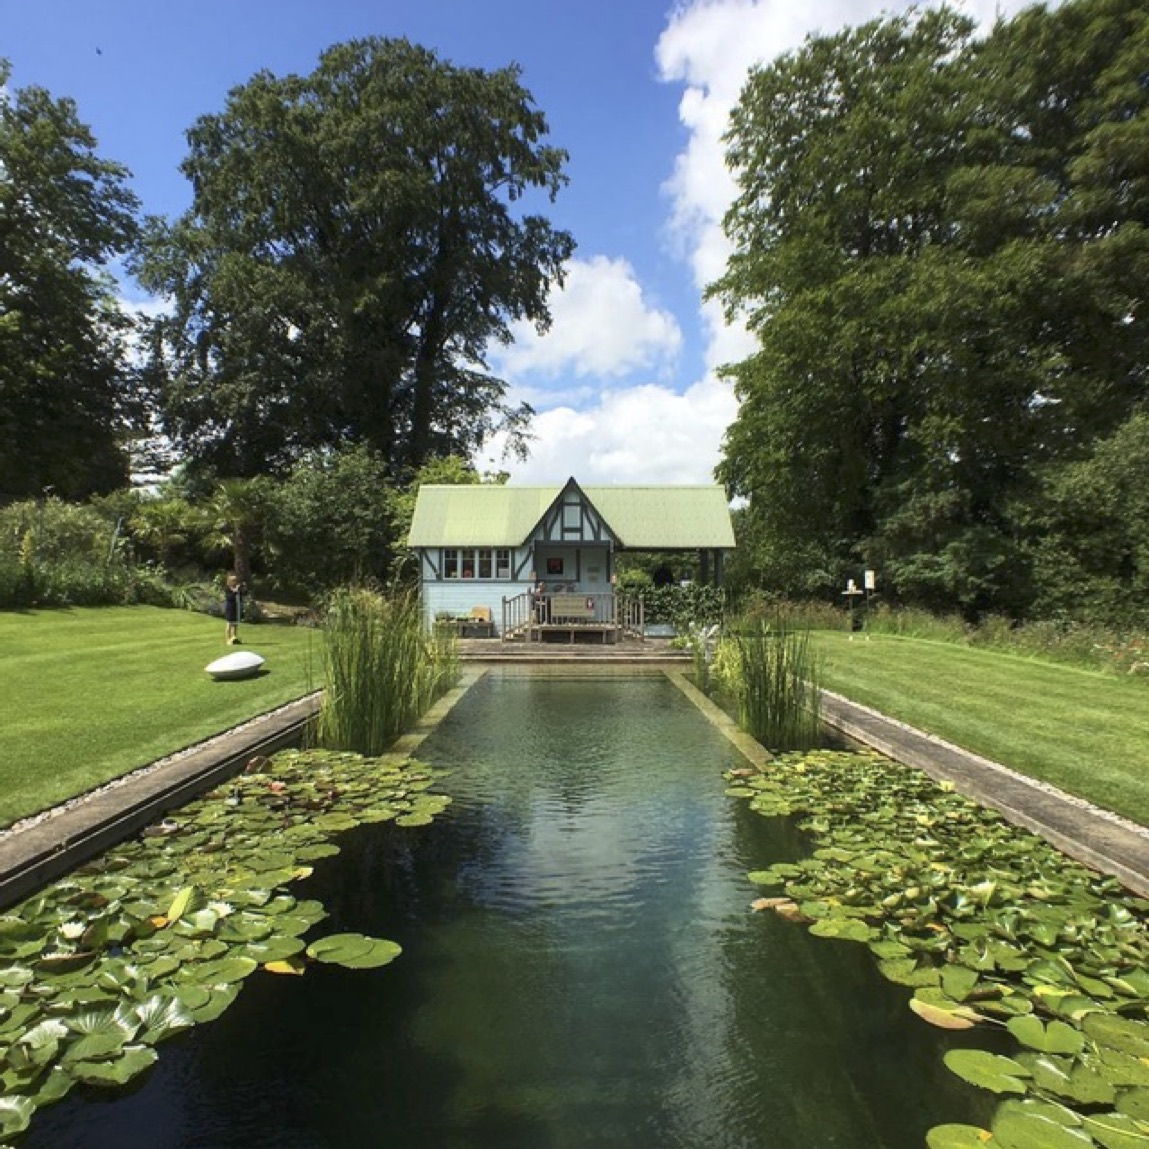 asthall-manor-pool.jpg#asset:3807